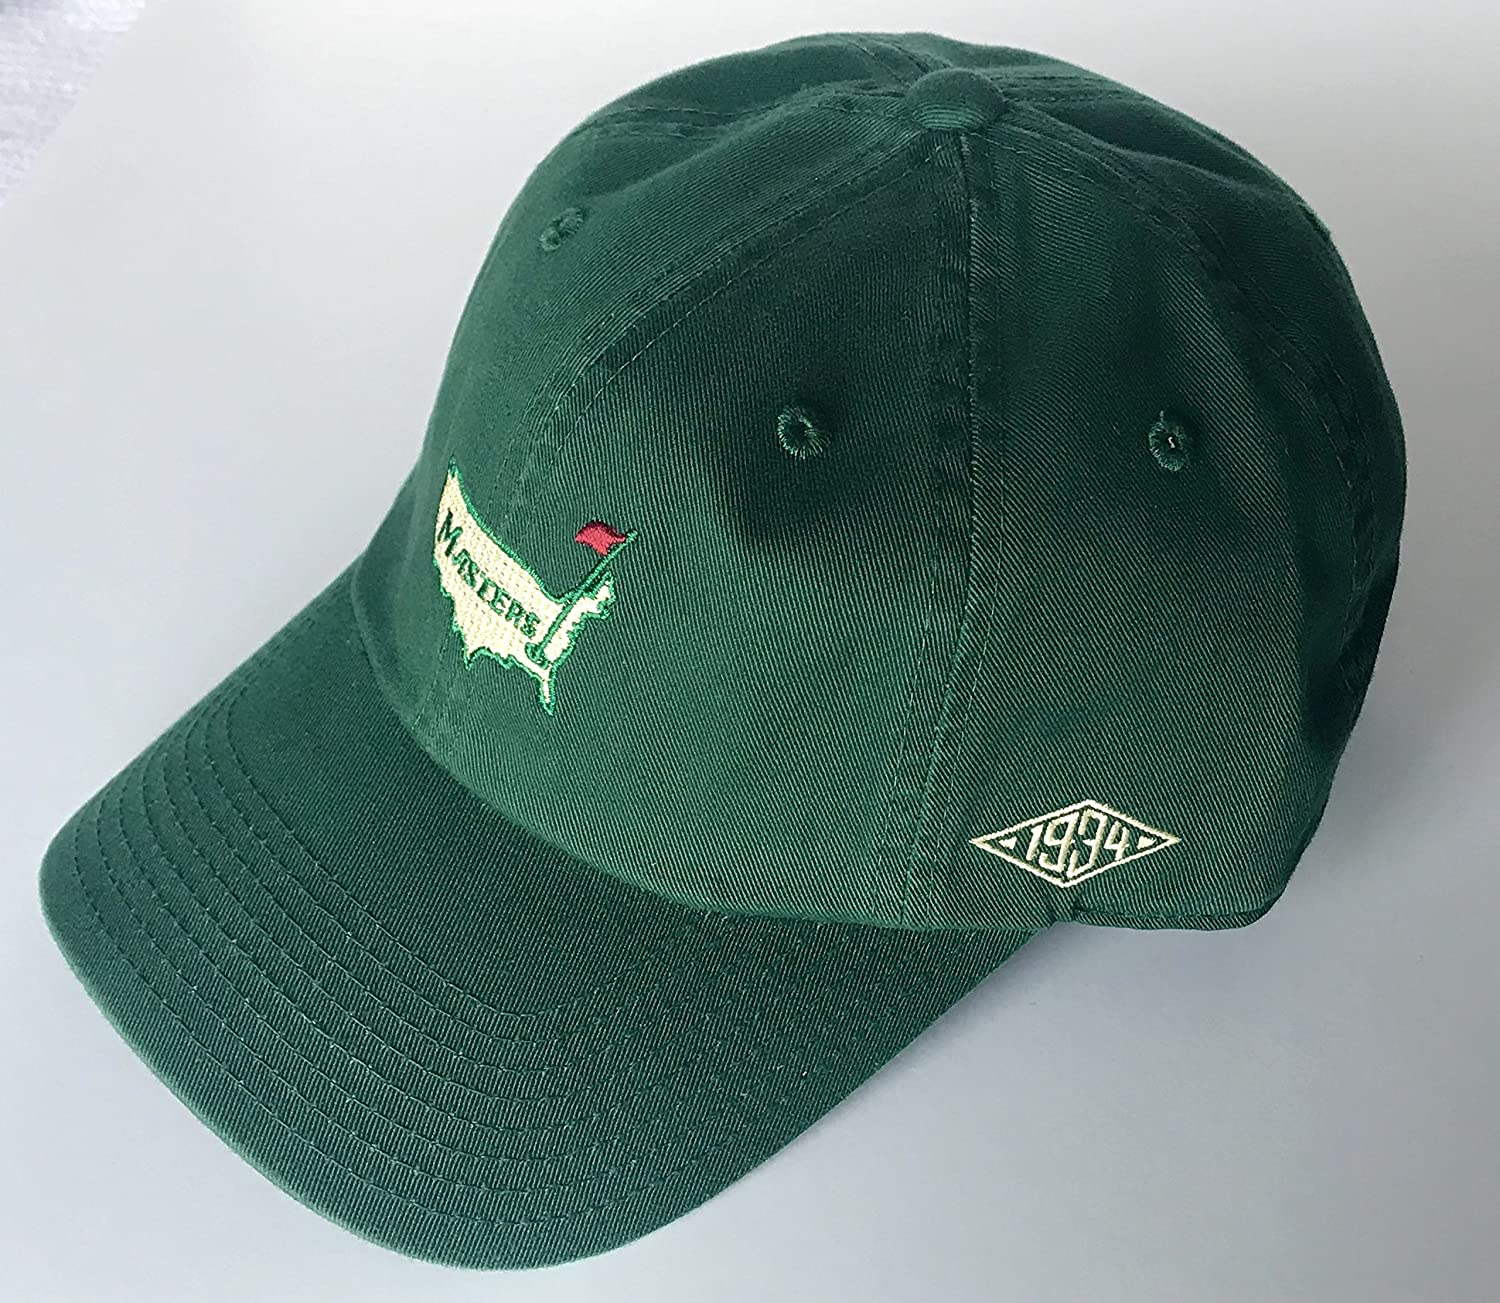 ace2b86fe86 Masters golf Hat Augusta National vintage logo green new 2019 pga at  Amazon s Sports Collectibles Store